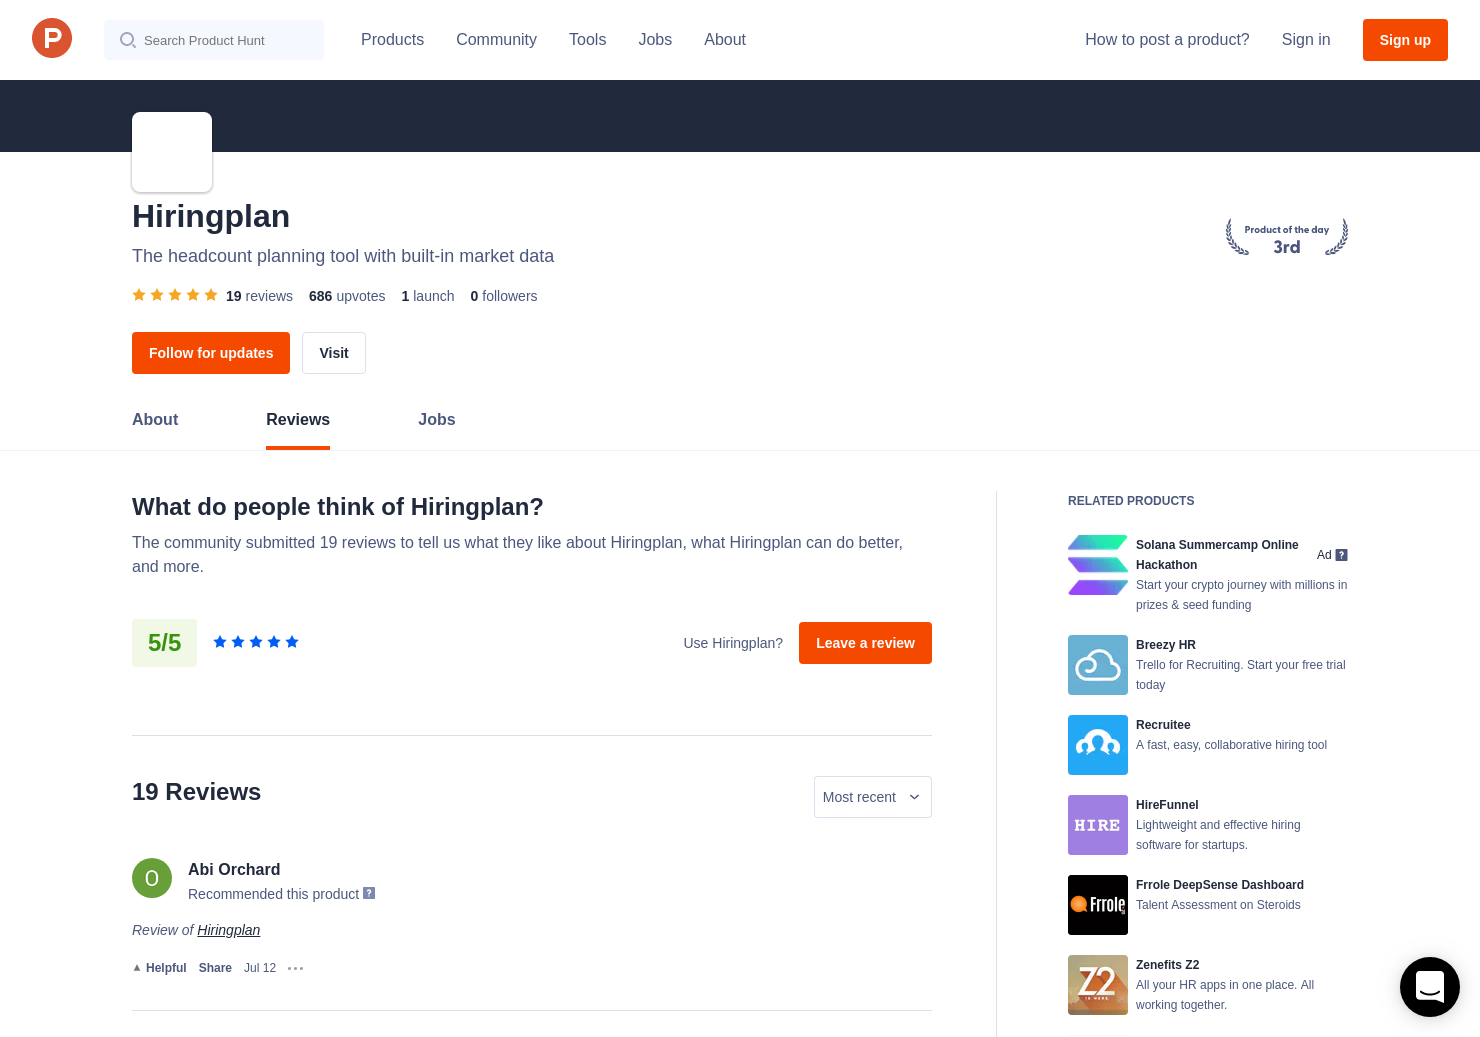 Andres Barreto's review of Hiringplan   Product Hunt